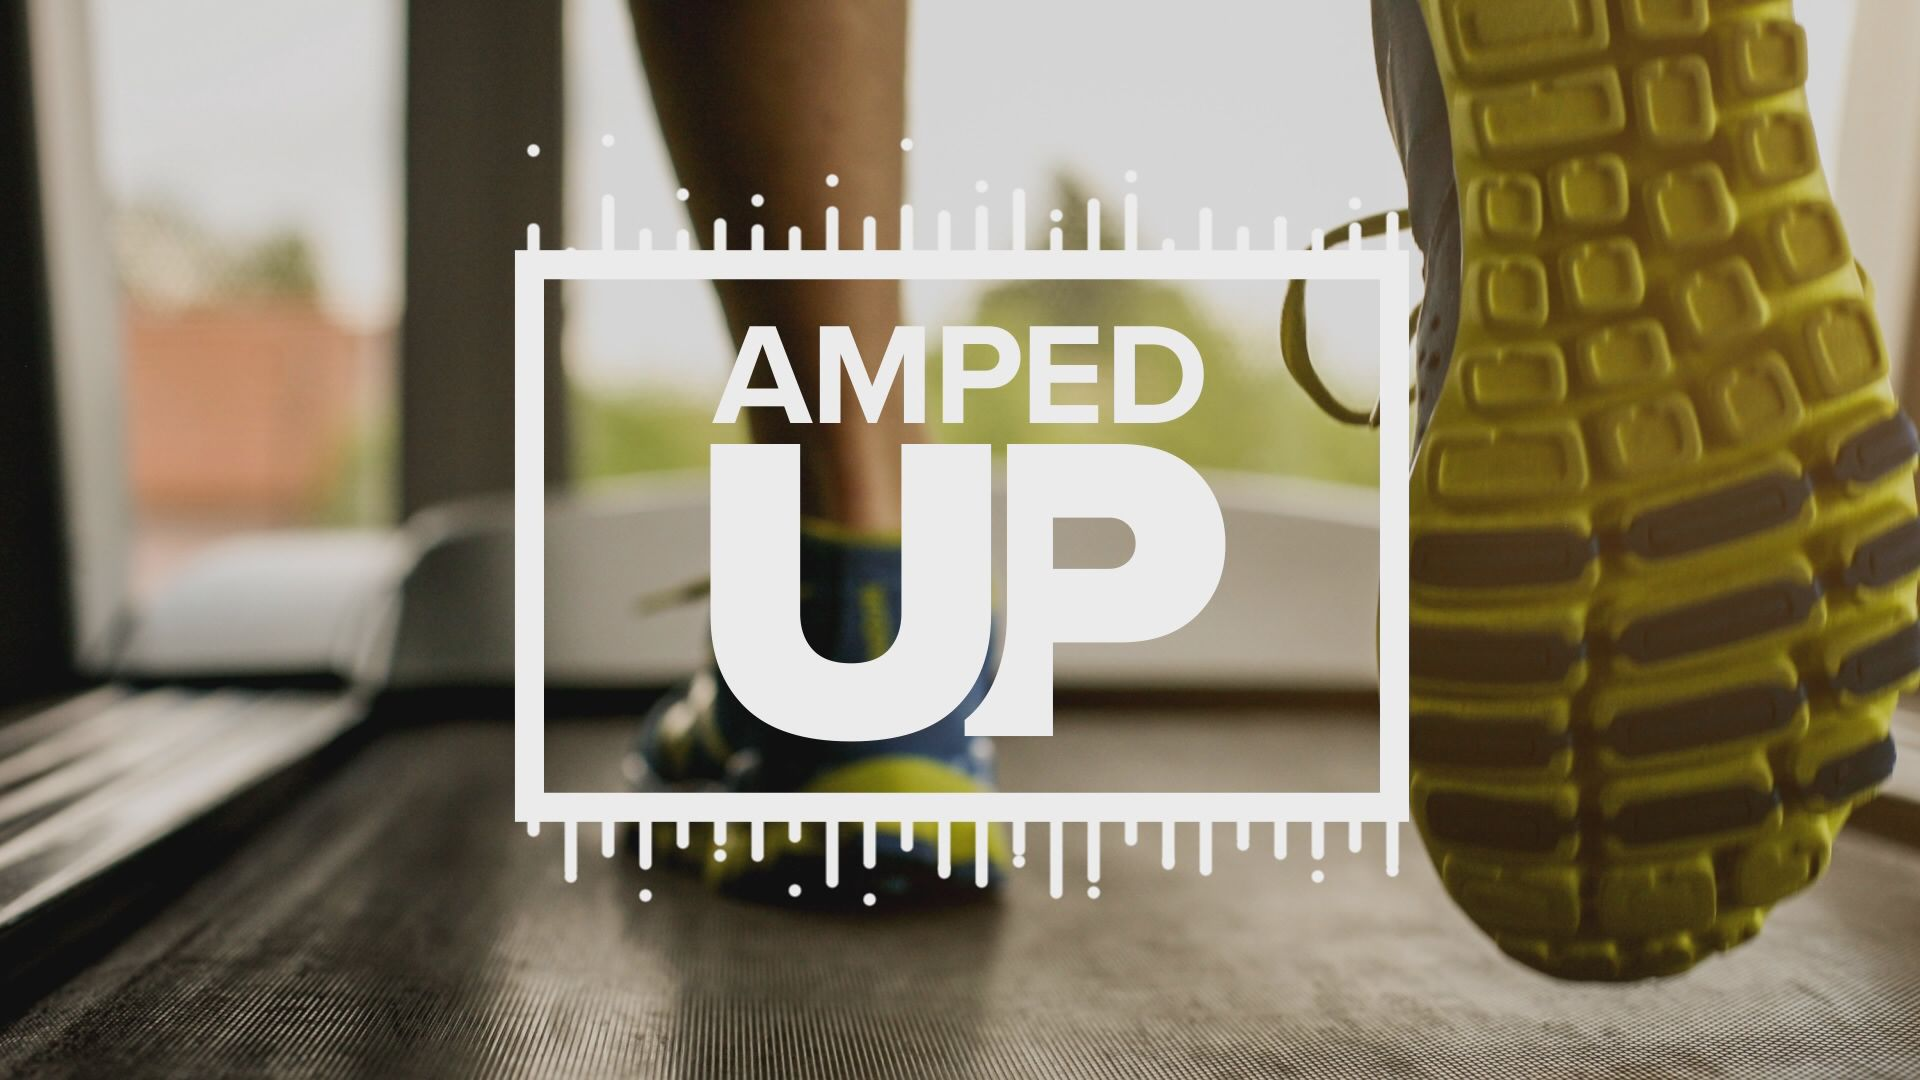 Amped Up